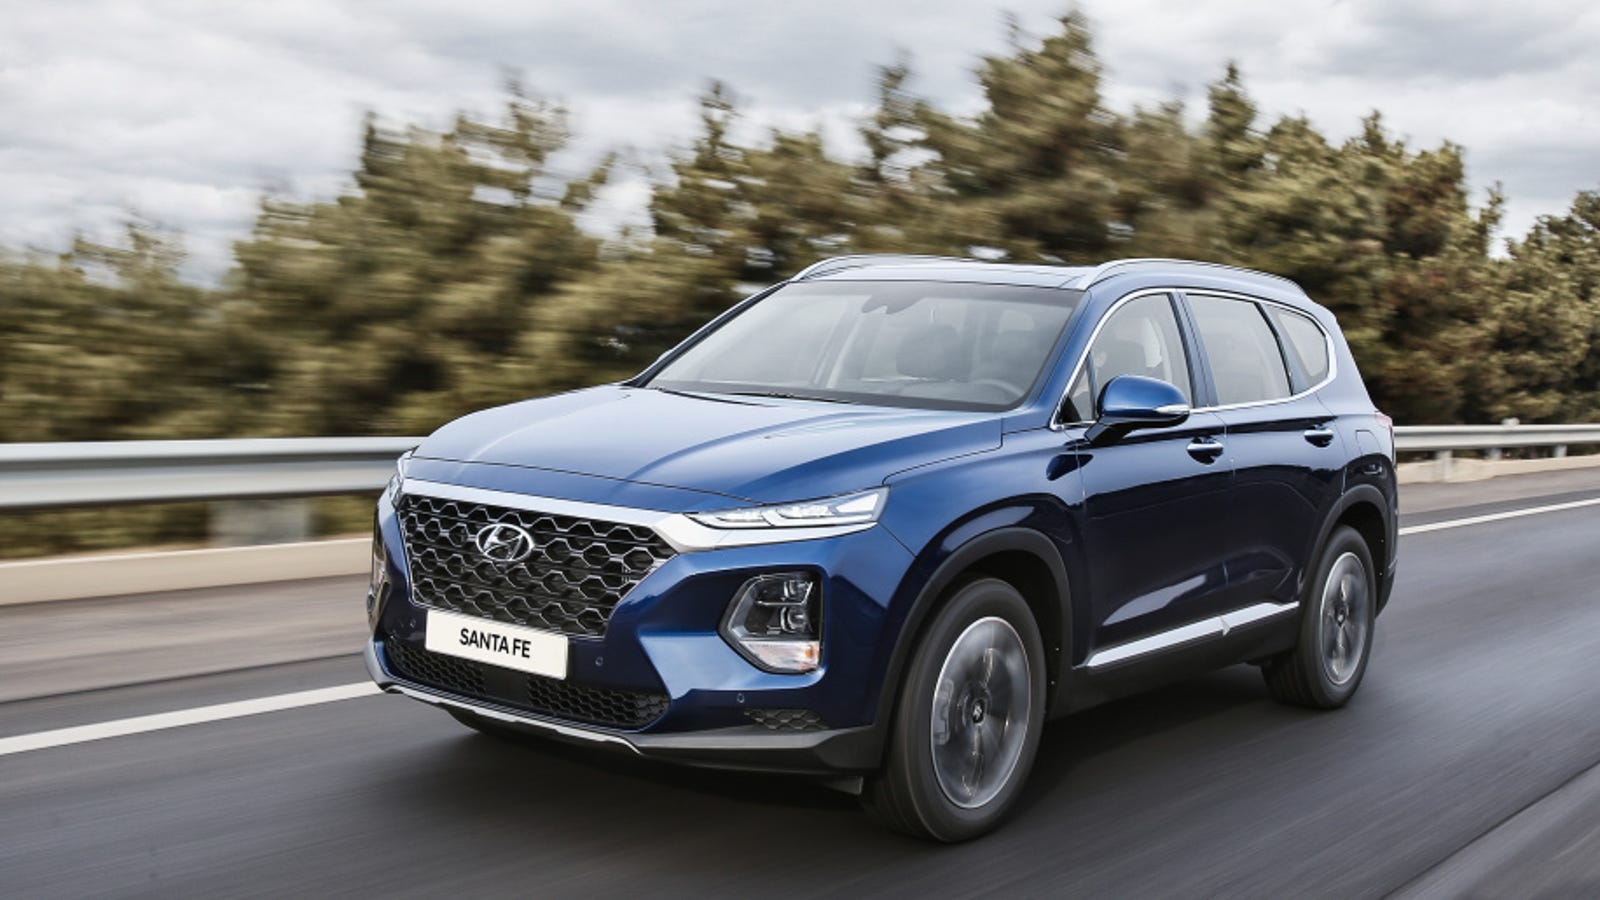 The 2019 Hyundai Santa Fe Will Be An Upscale Family Hauler With Diesel Power